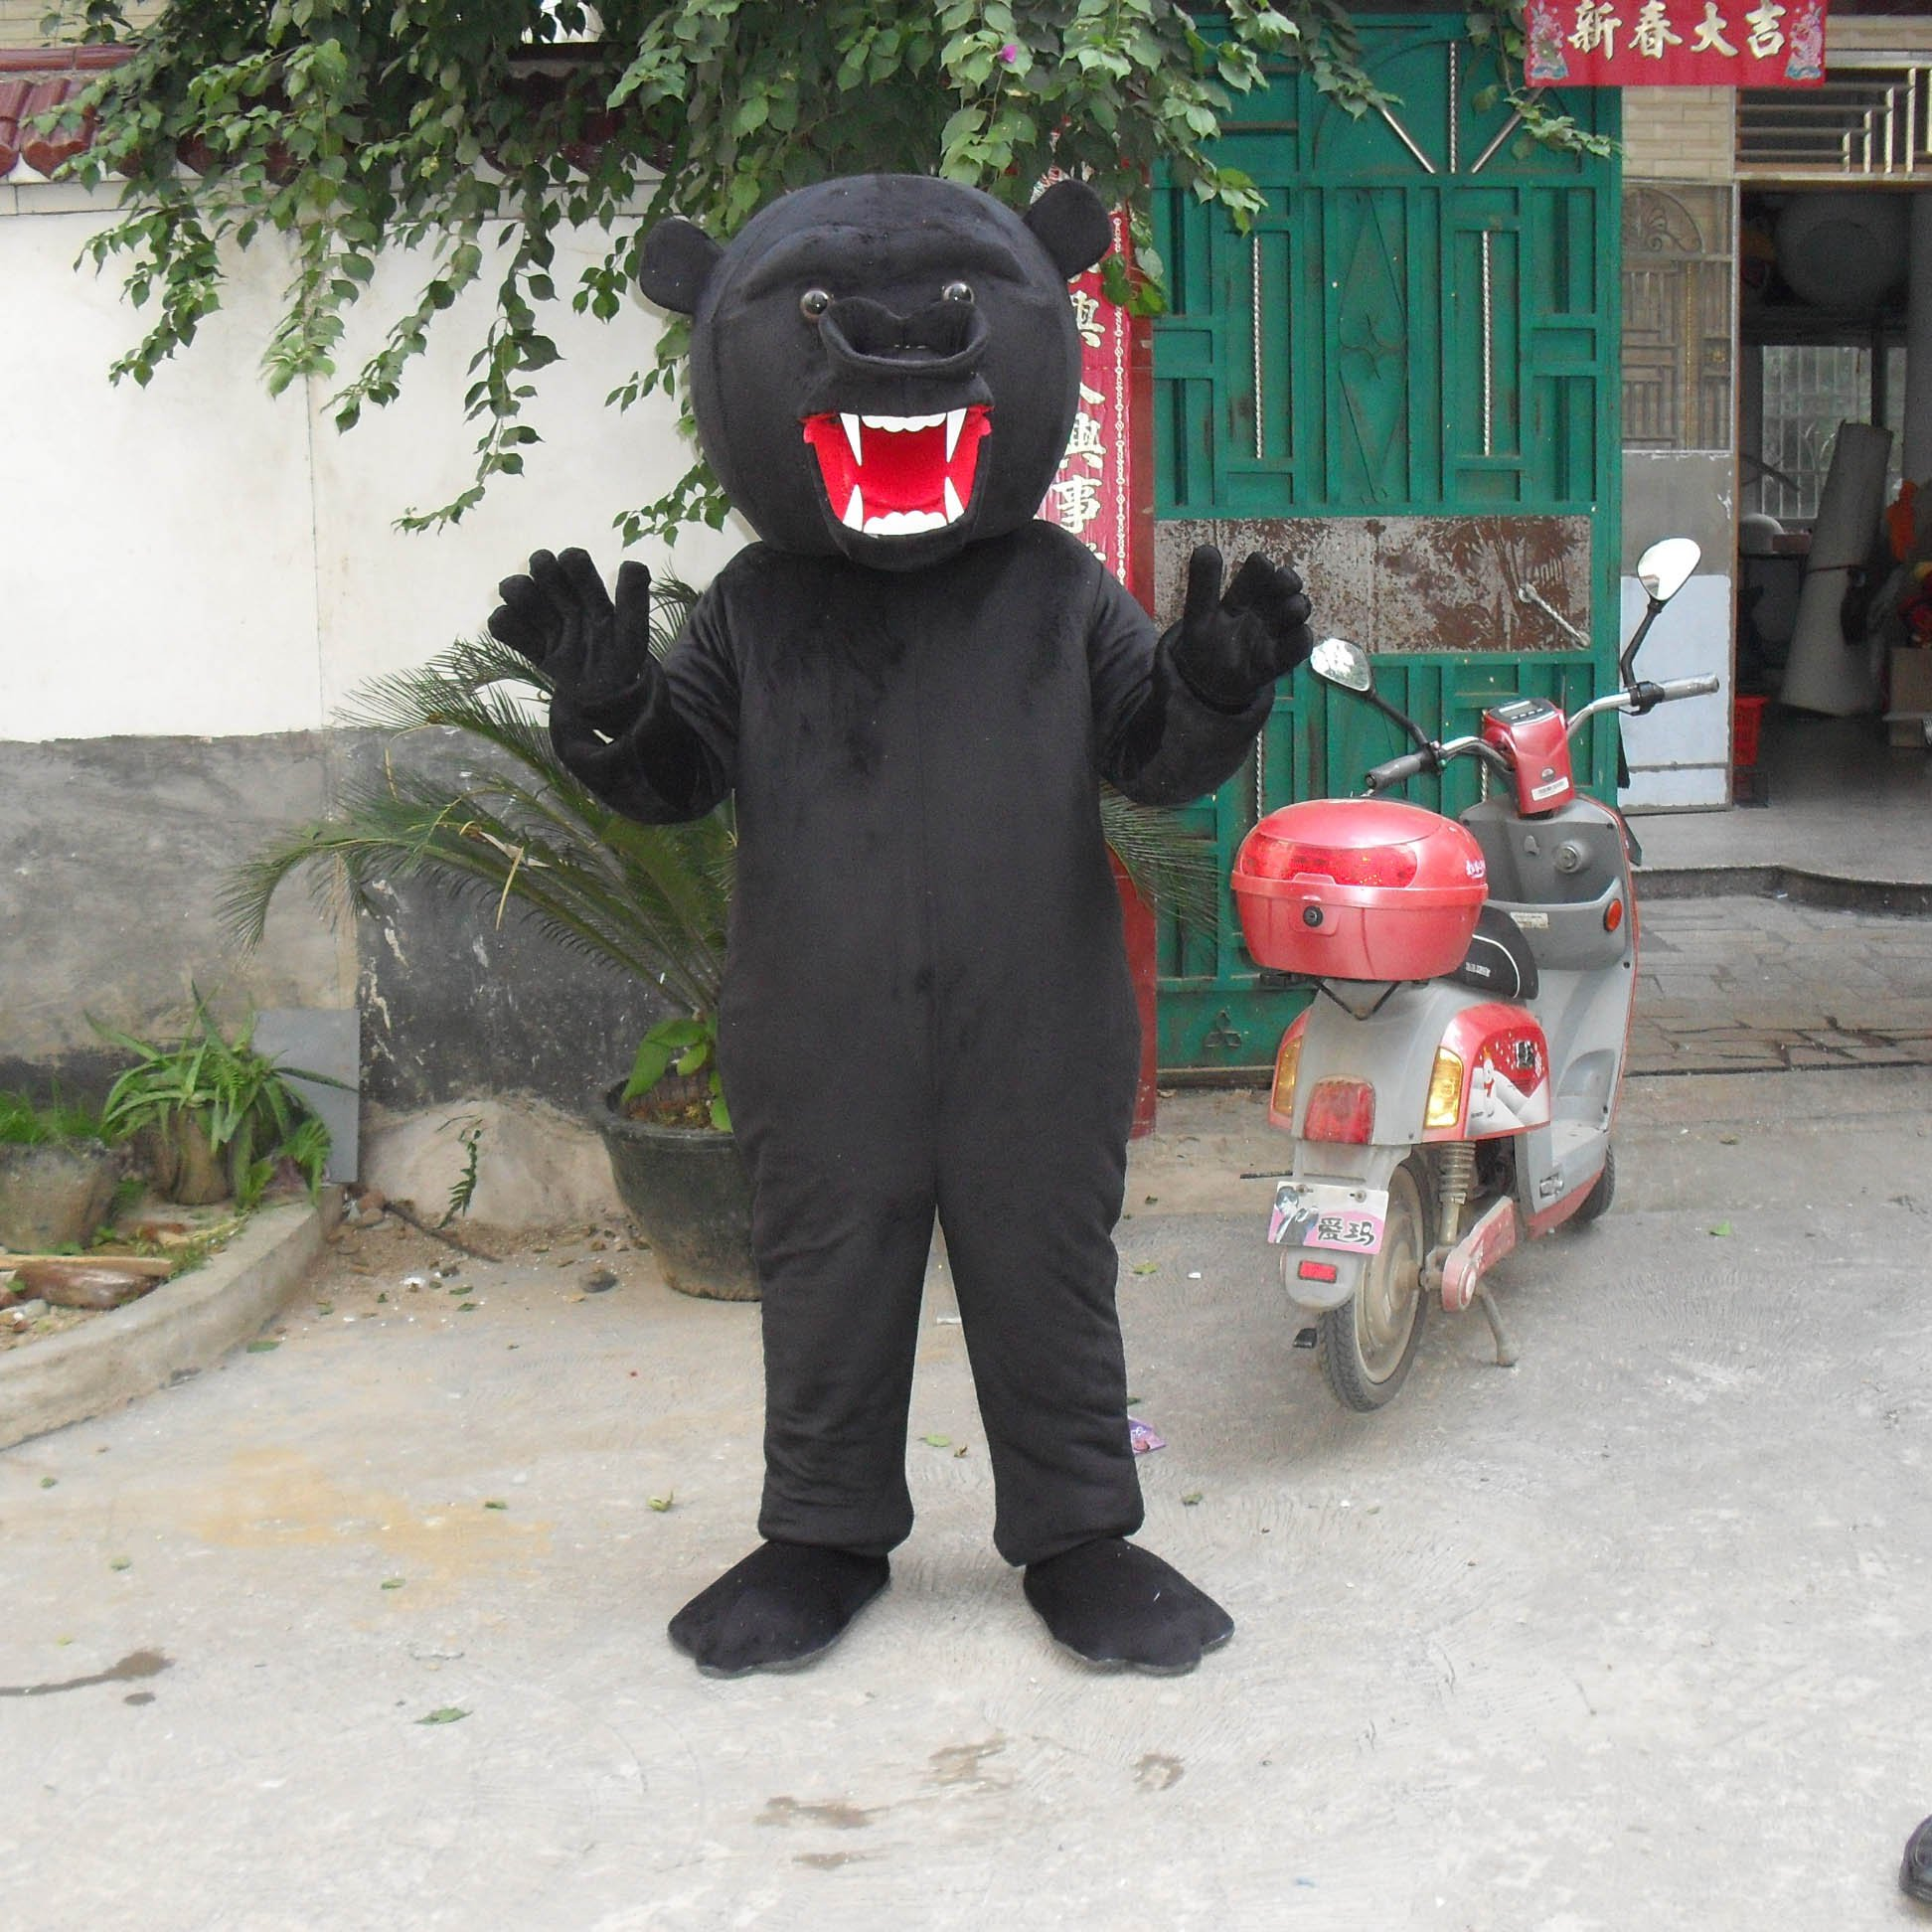 Cartoon Doll Clothing Cartoon Walking Doll Clothing Cartoon Show Clothing Cartoon Dolls Dolls Clothes Big Black Bear Mascot Costume